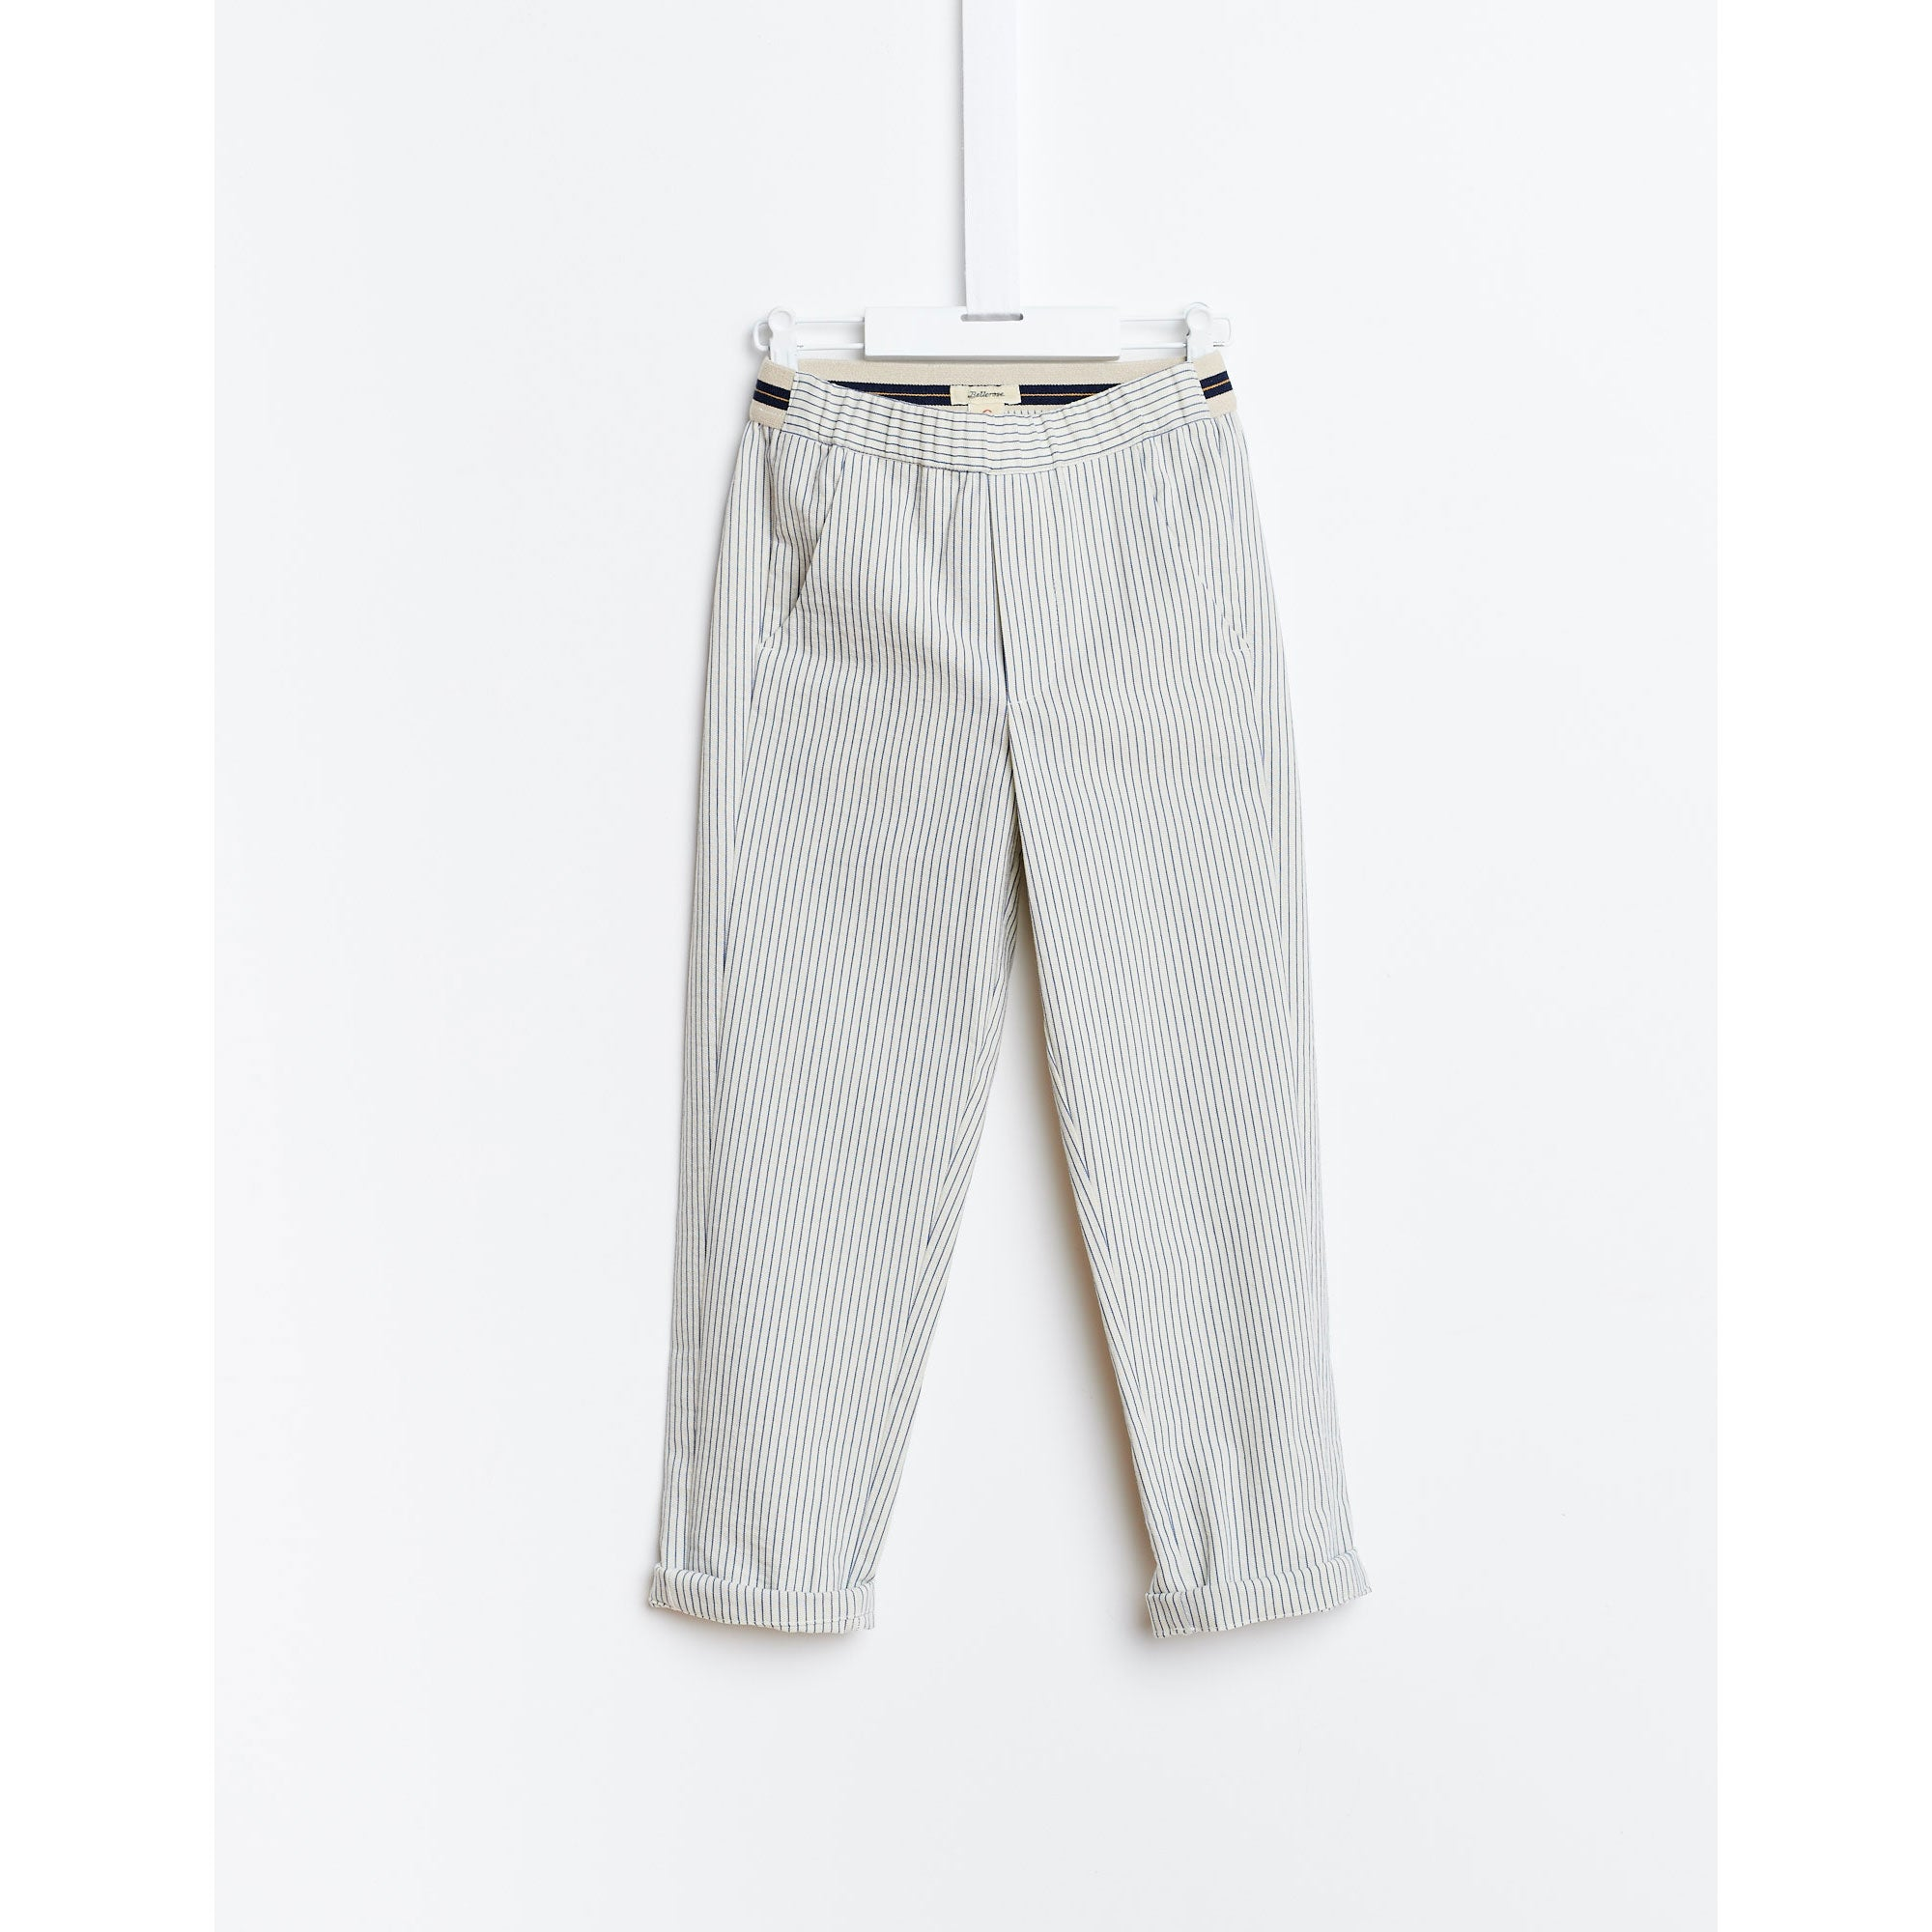 Bellerose Blue Thin Stripe Pants